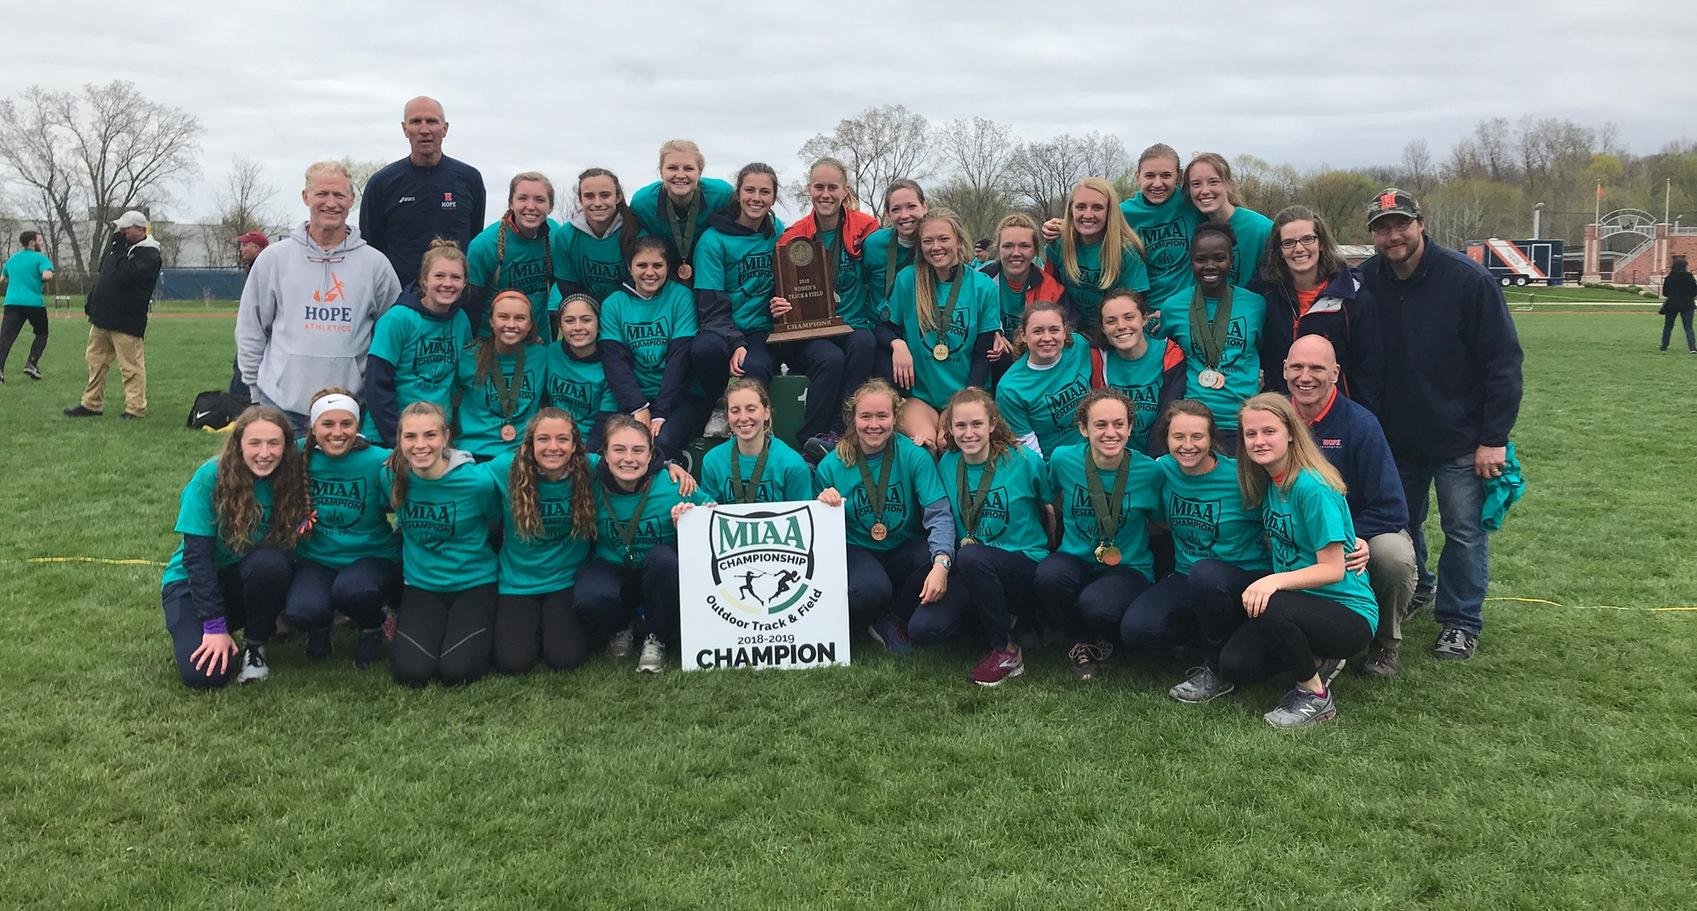 Hope women's track & field team poses with championship MIAA trophy